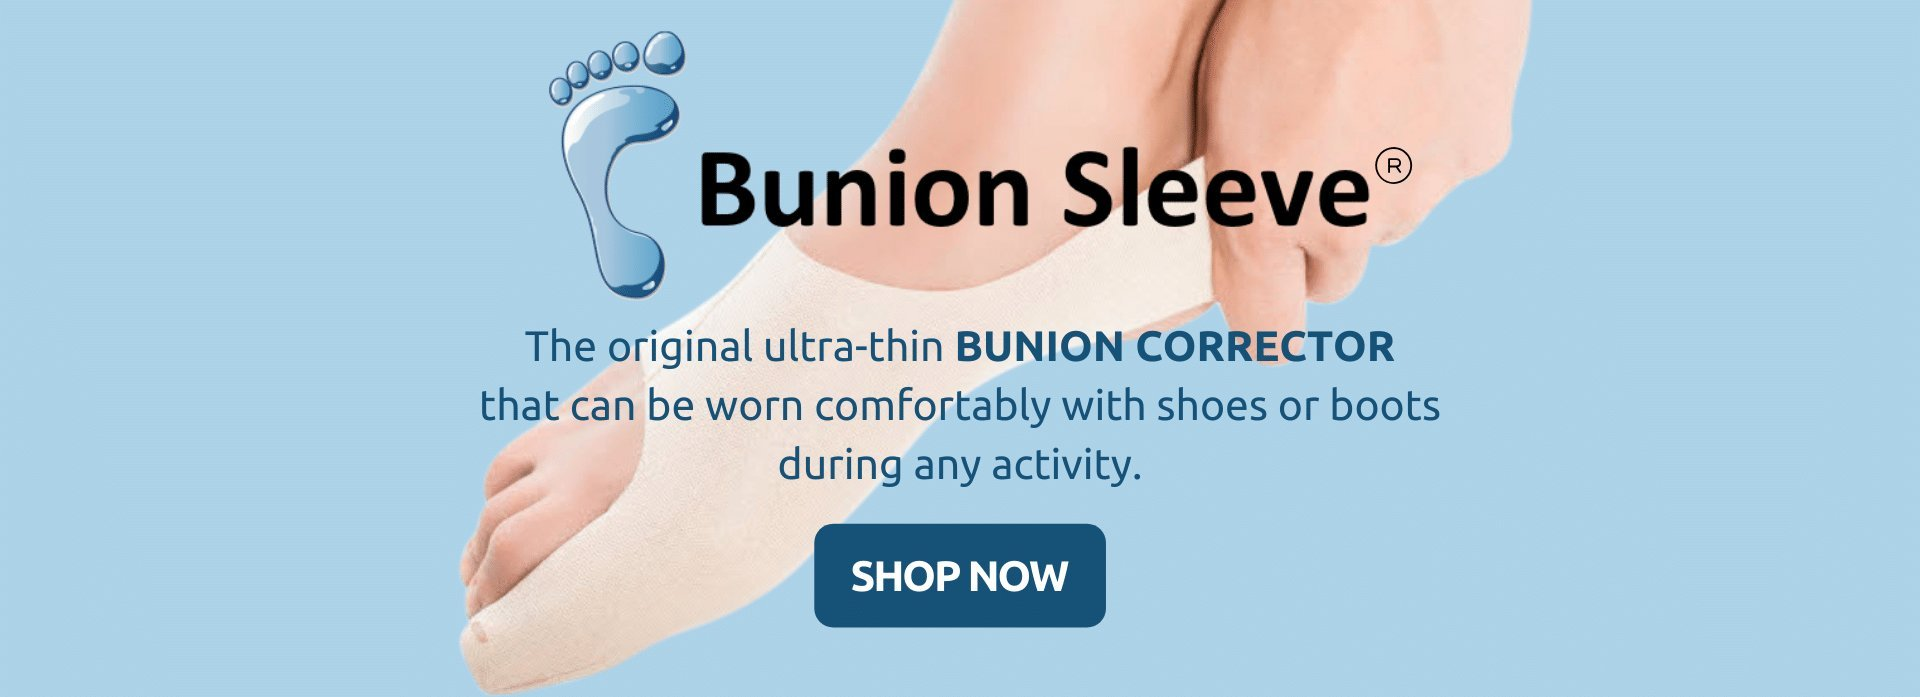 buy bunion sleeve the original ultra thin bunion corrector